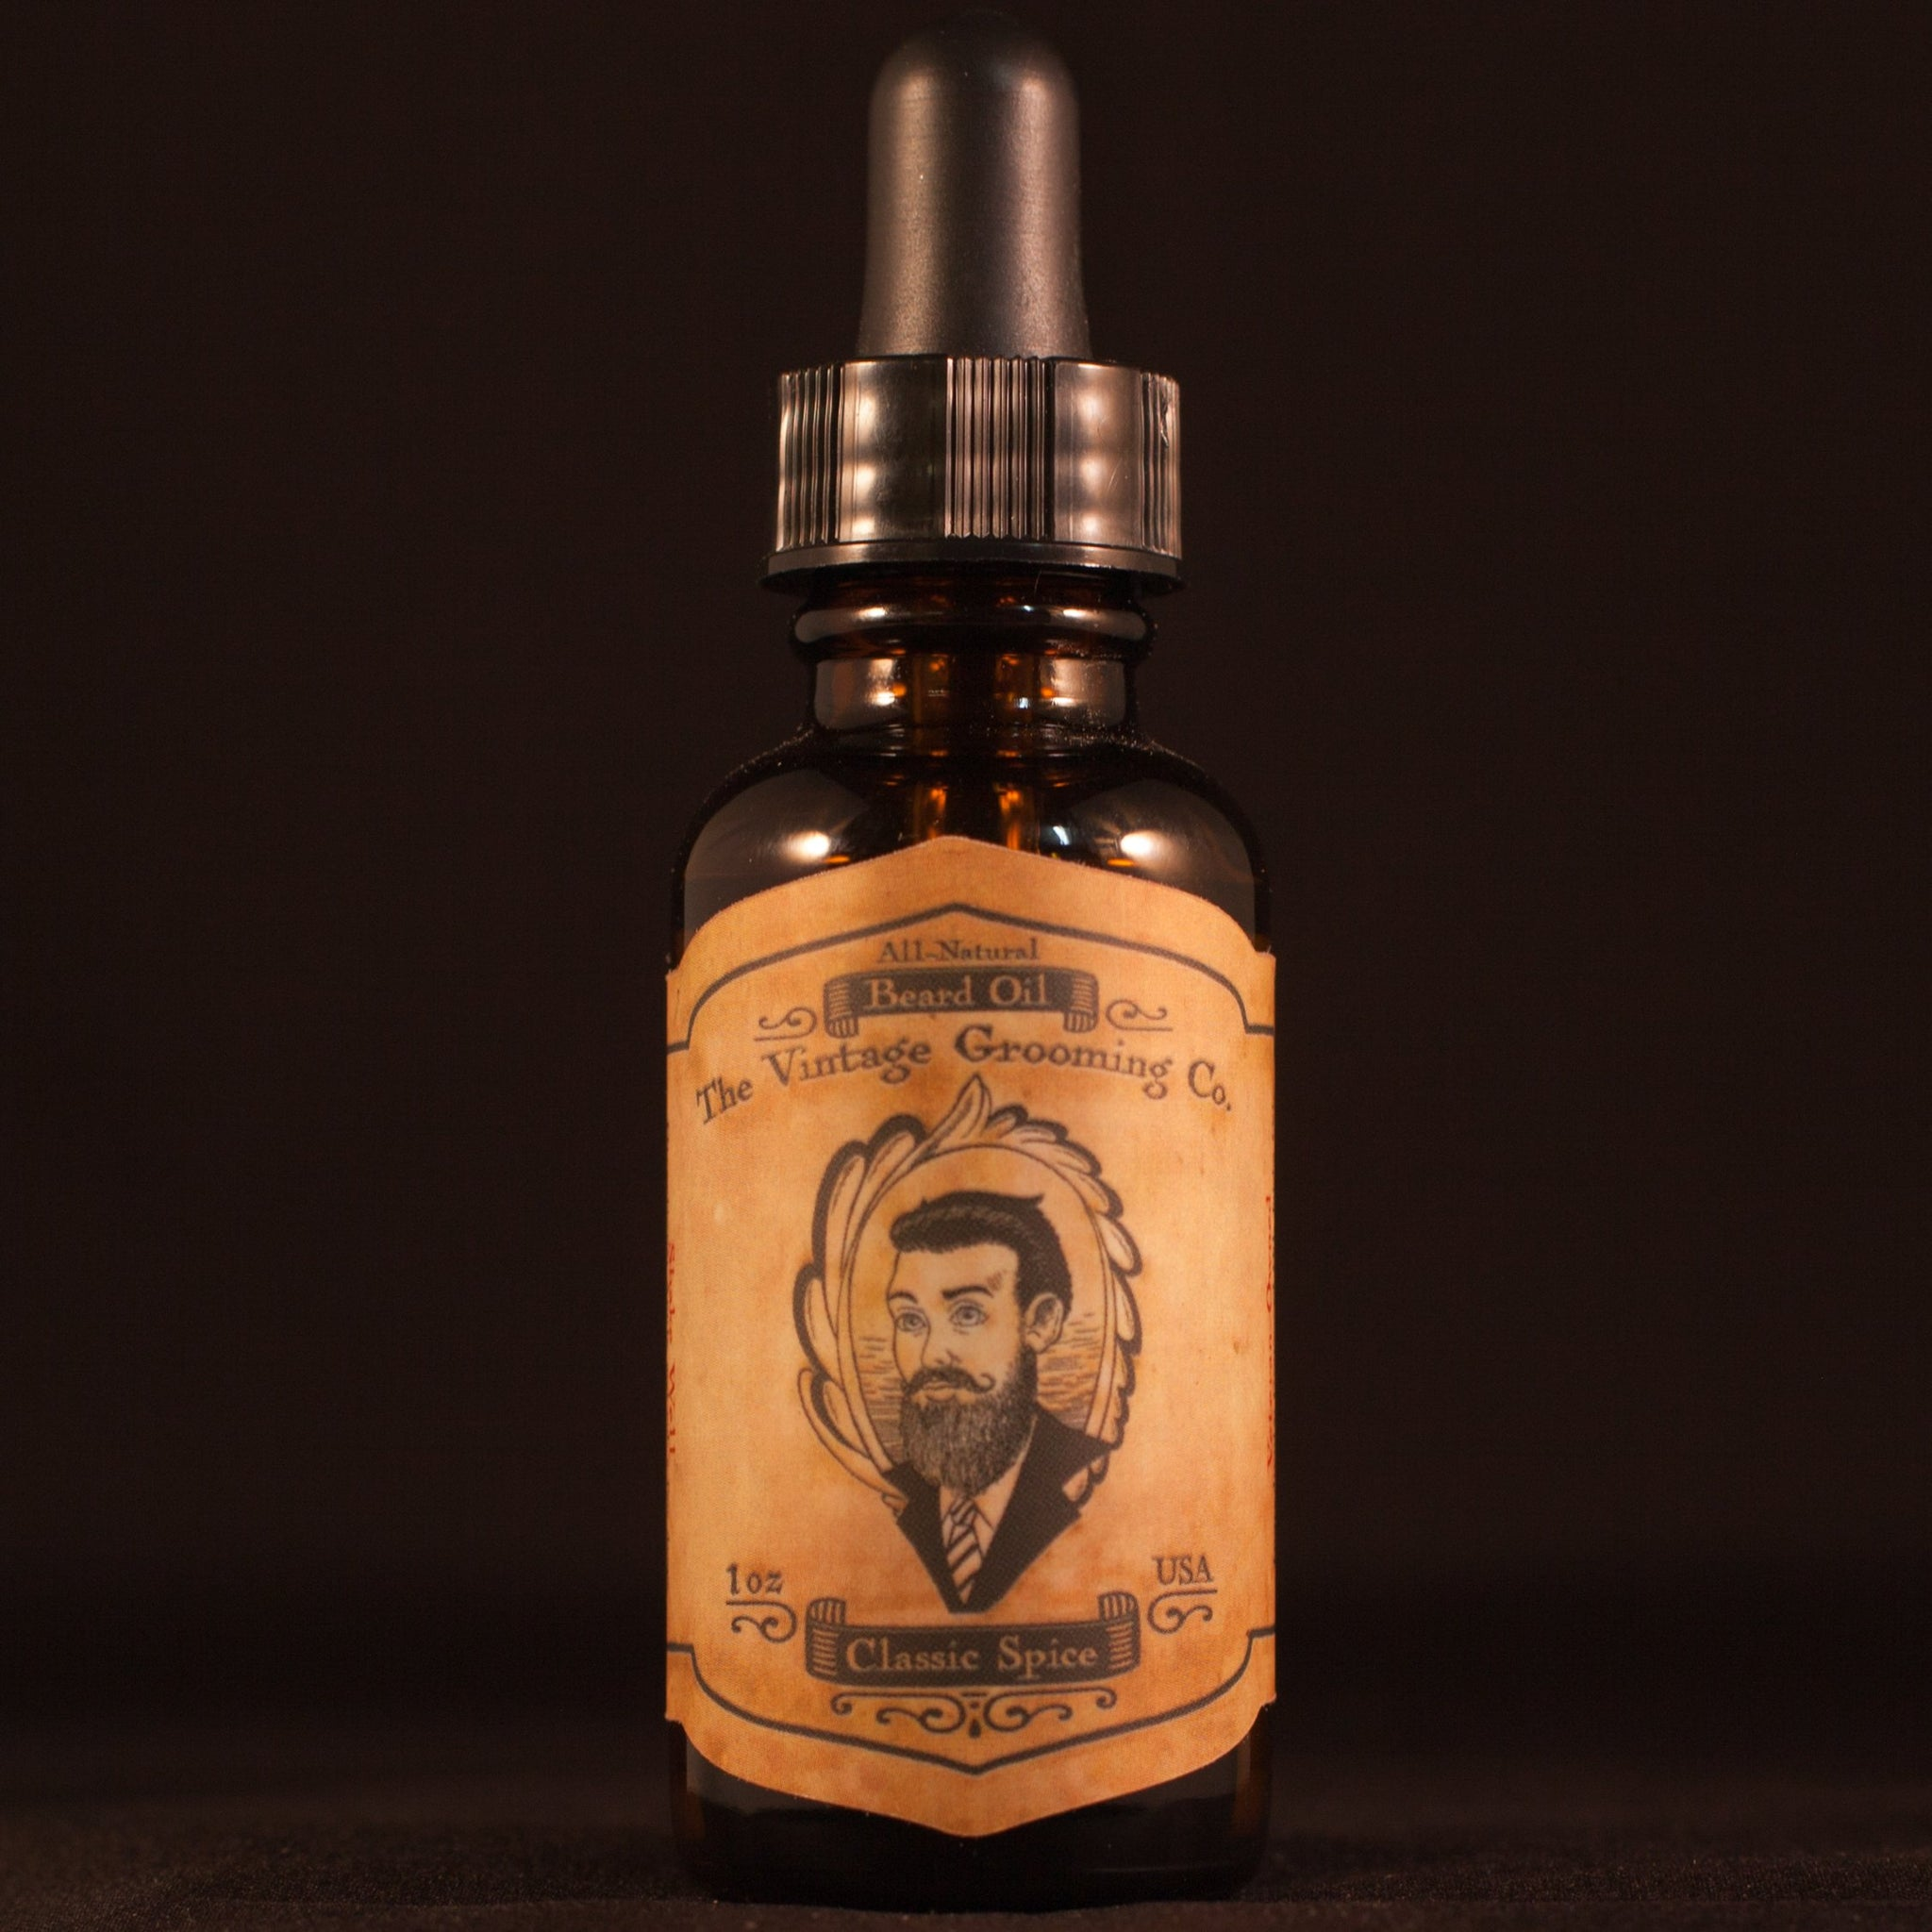 Classic Spice Beard Oil (1oz) All-Natural